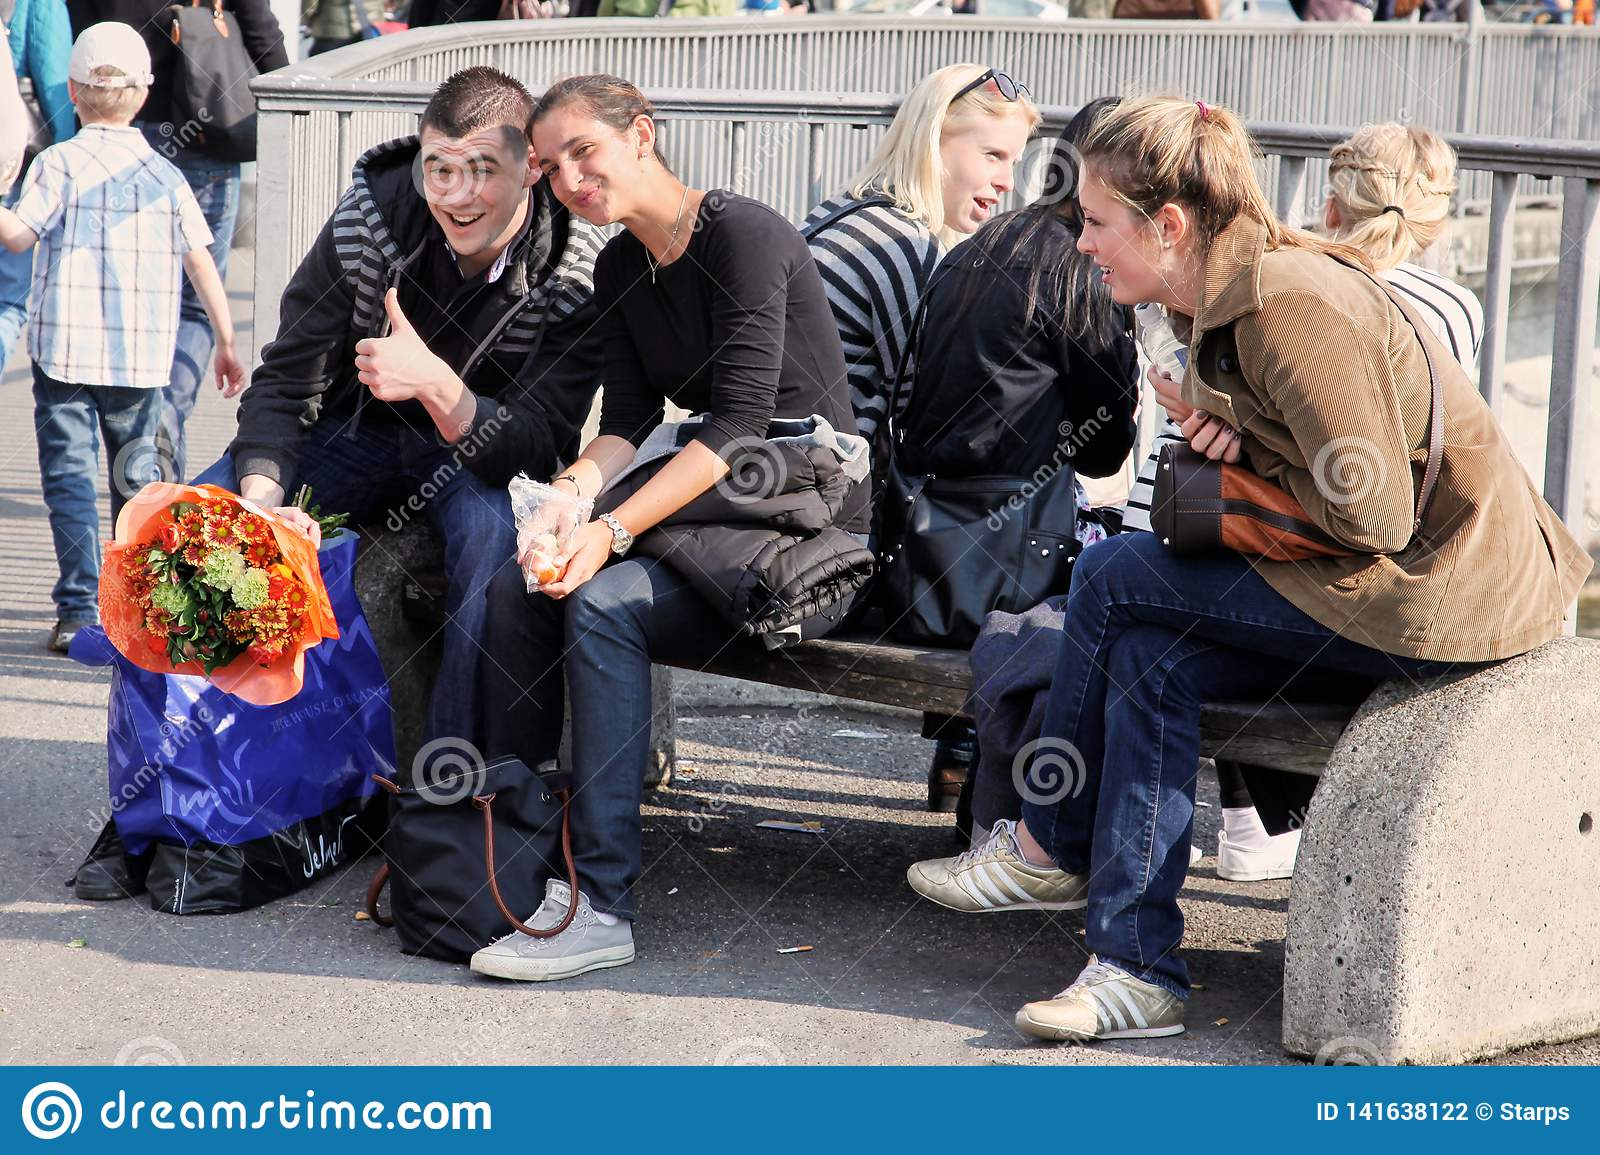 Geneva, Switzerland - May, 2012: The group of young people sitting on the street bench in front of the river. Couple of friend, ma